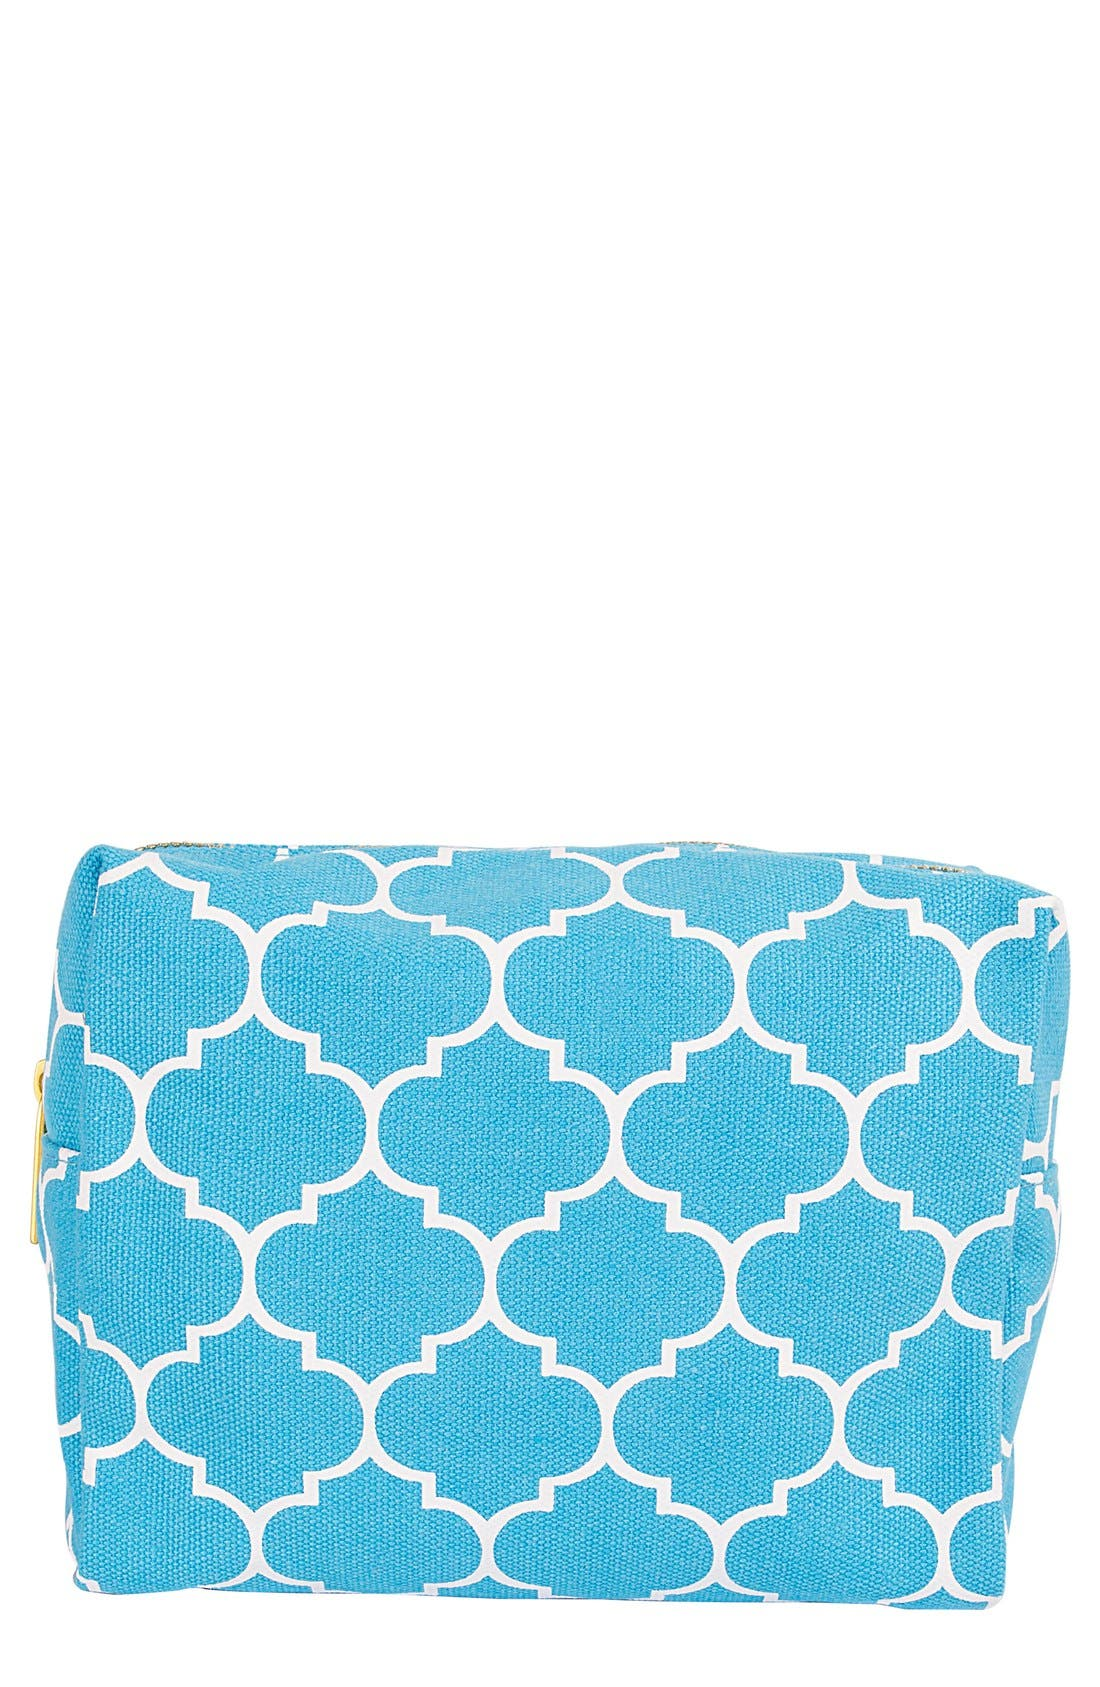 Monogram Cosmetics Bag,                             Main thumbnail 1, color,                             BLUE